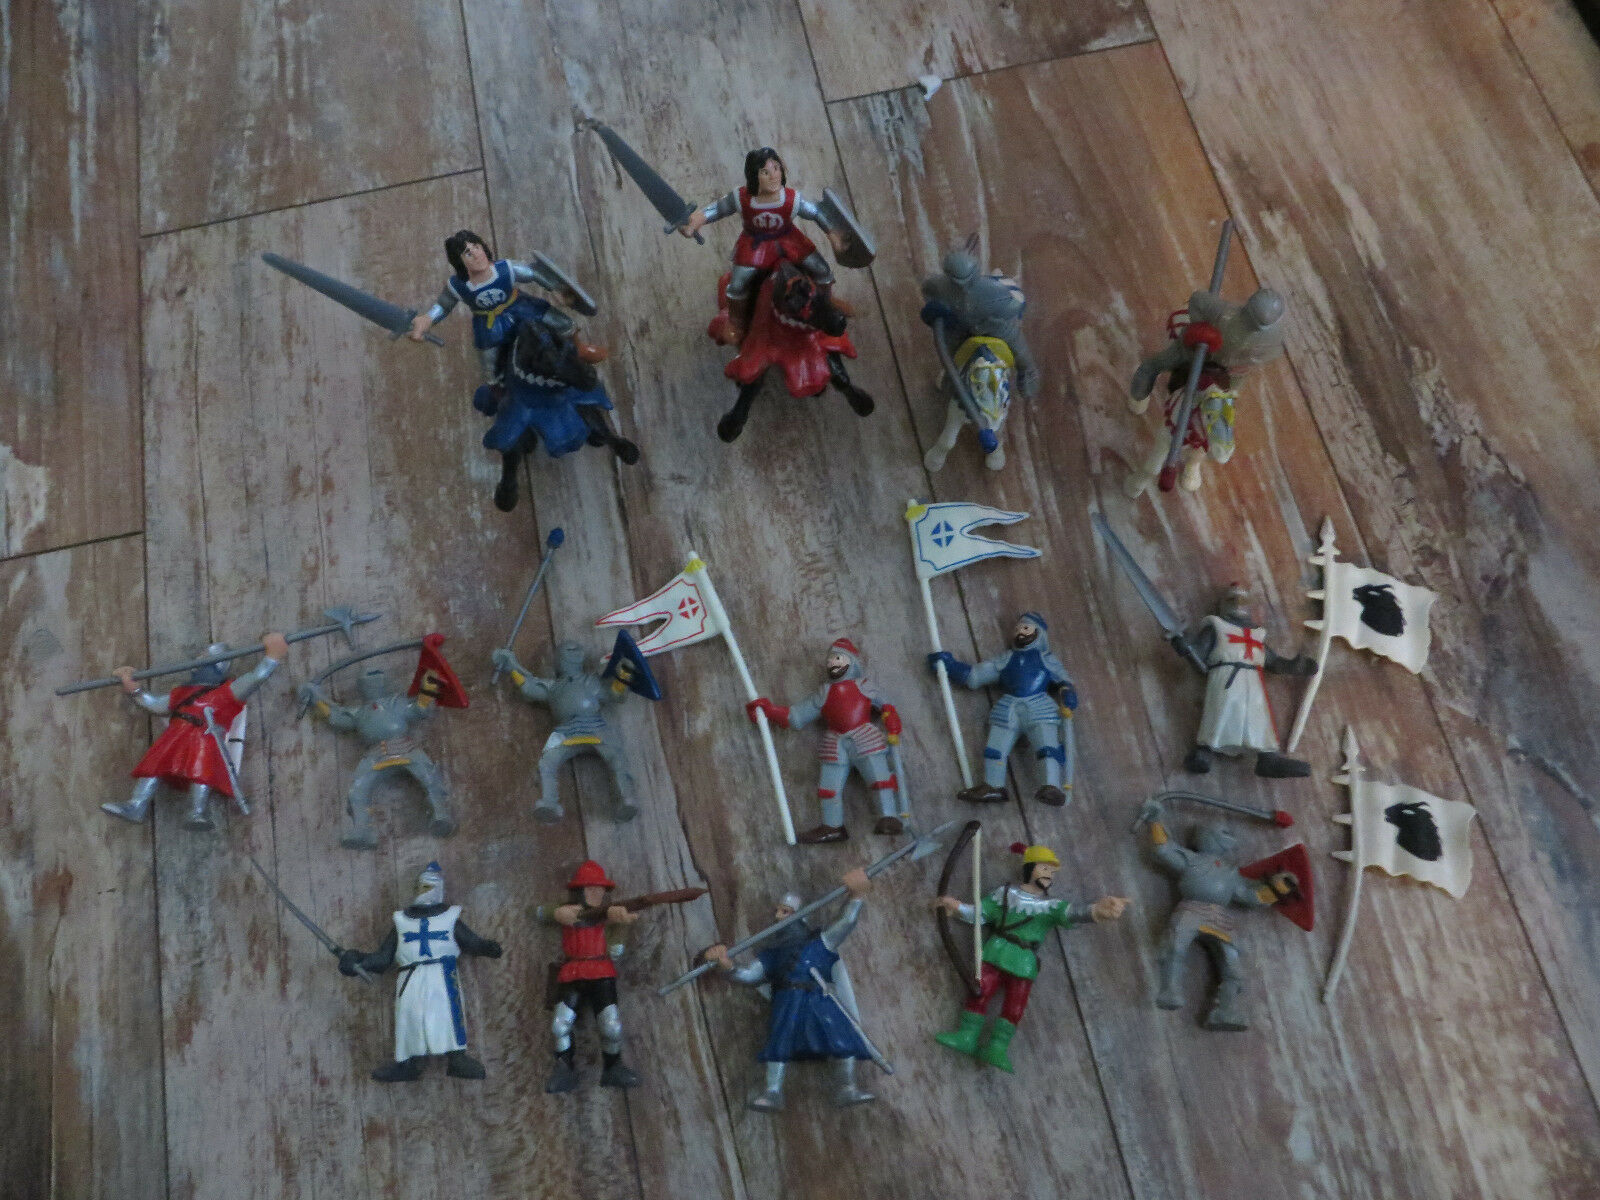 19 BULLYLAND MEDIEVAL KNIGHTS HORSES FIGURES FIGURINES NOT PAPO SCHLEICH